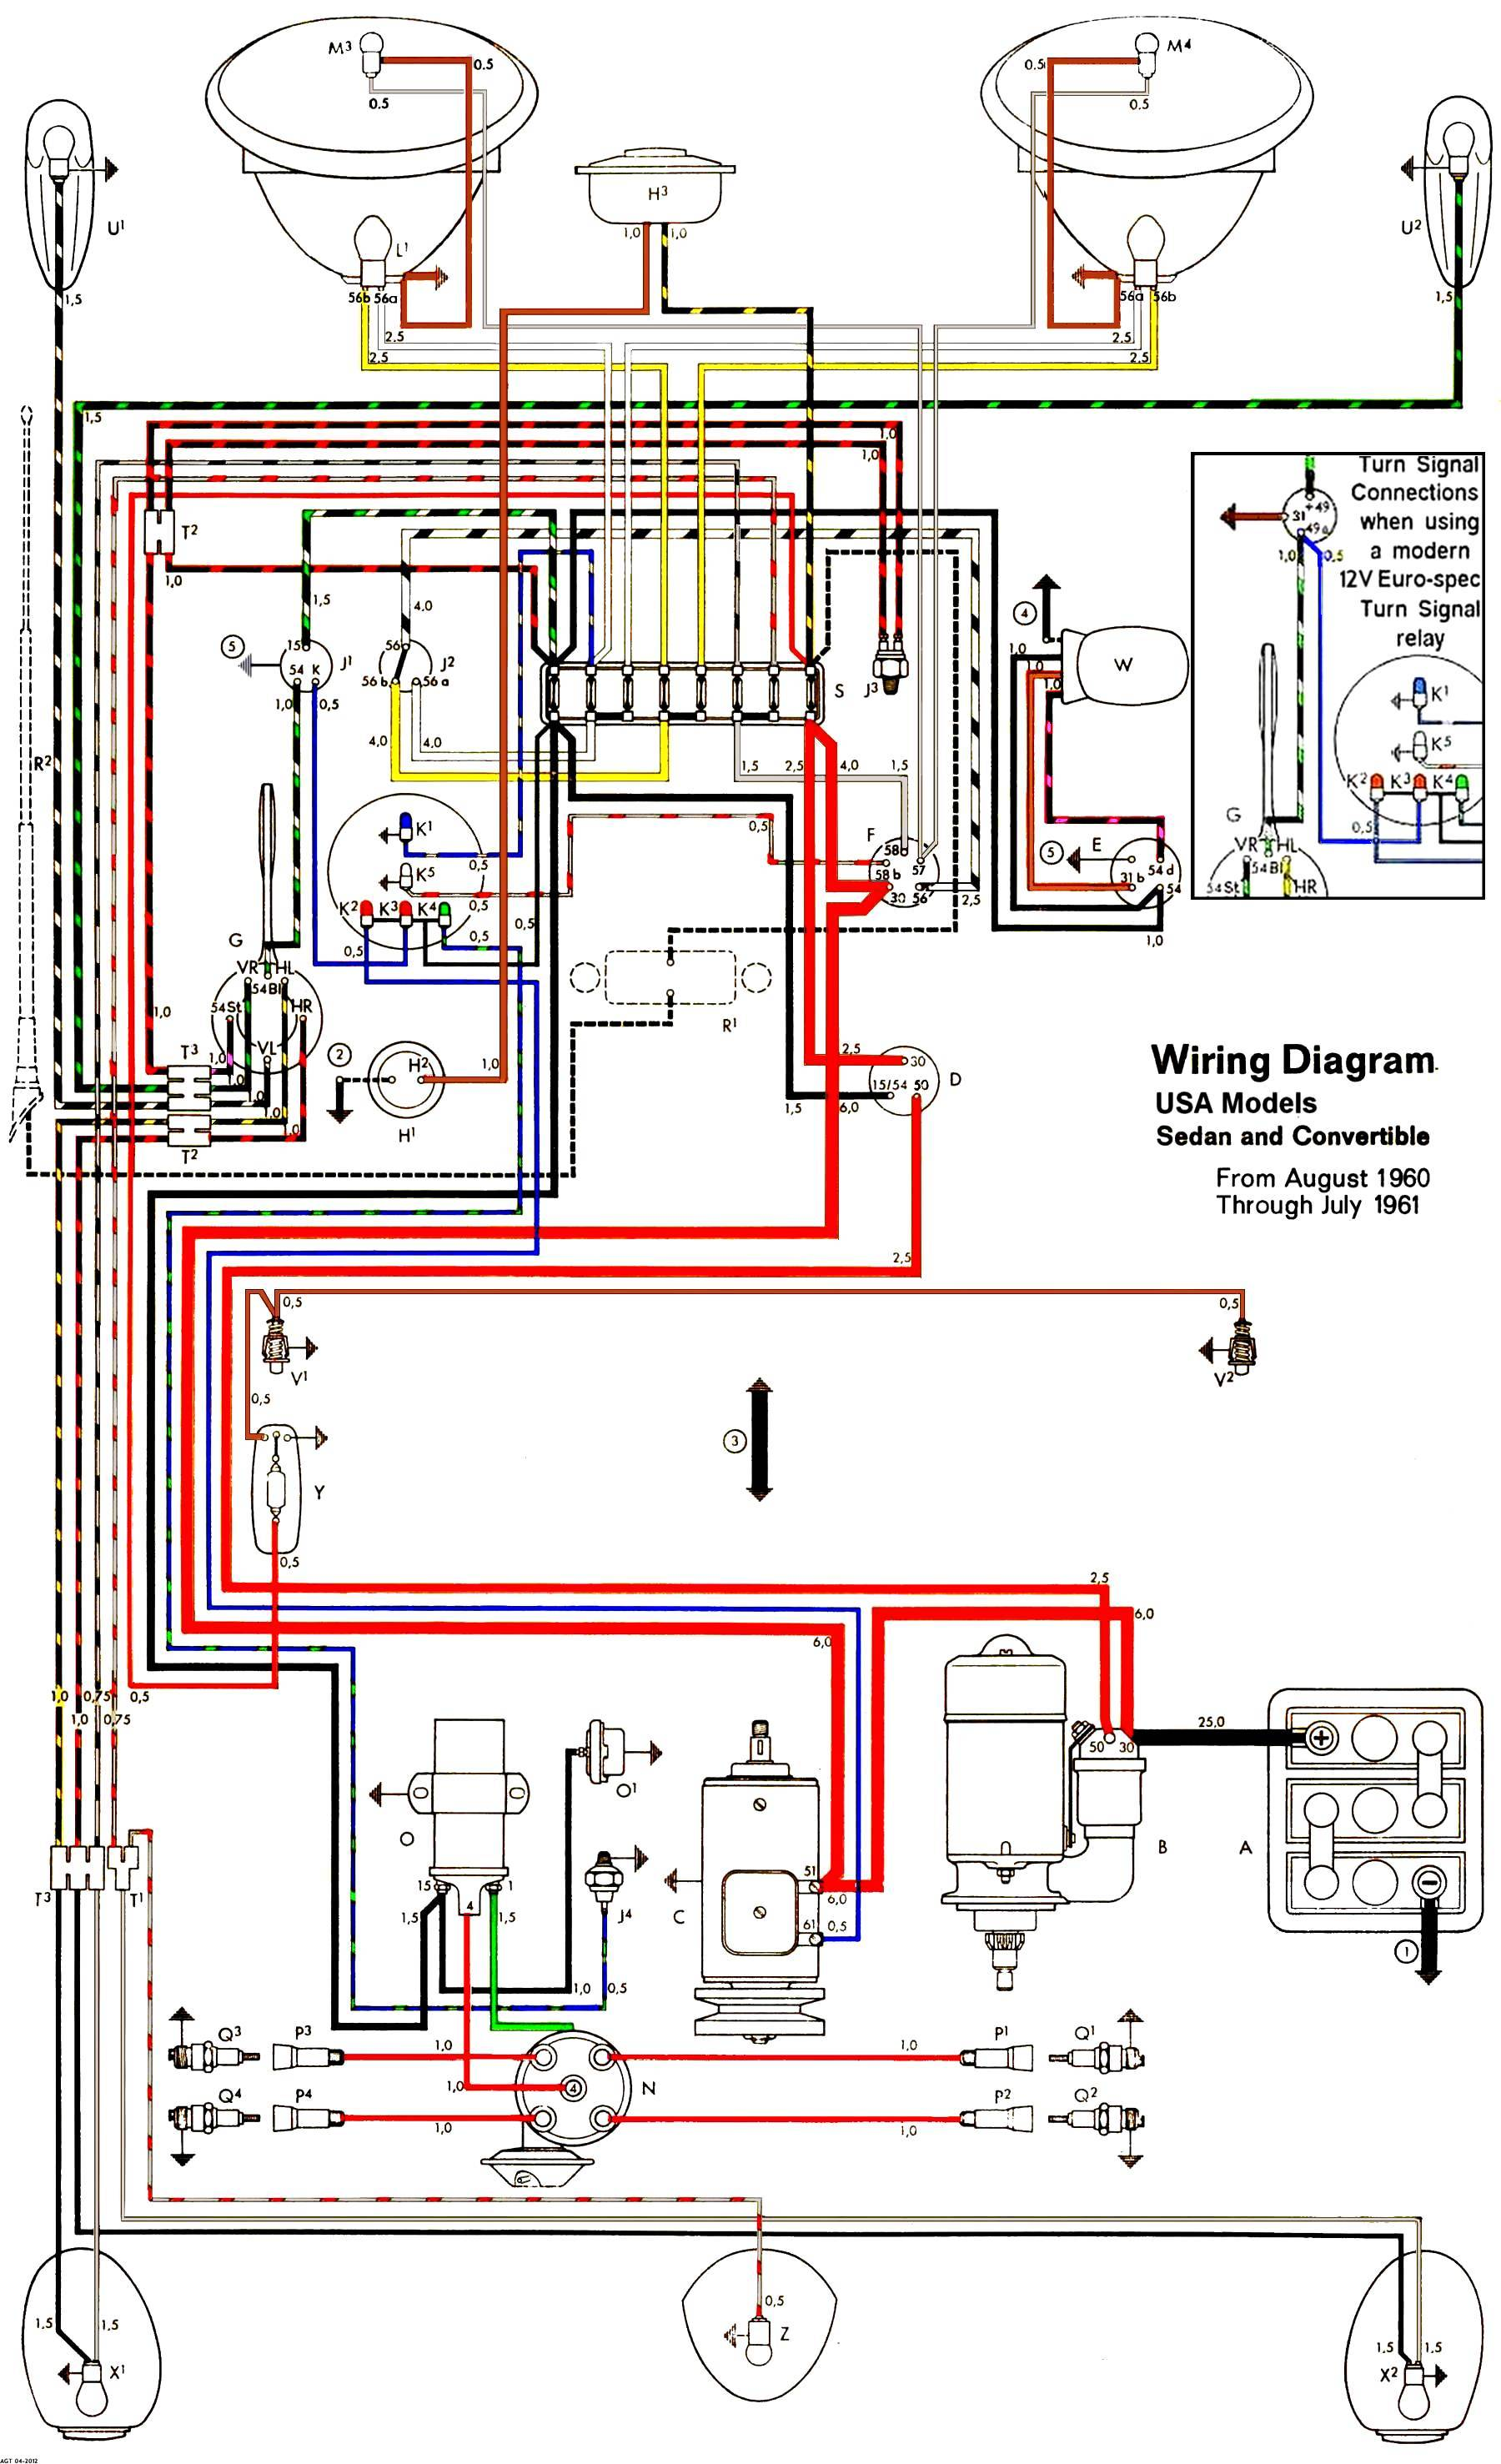 hight resolution of t1 circuit wiring diagram wiring diagram sonoff t1 wiring diagram t1 circuit wiring diagram